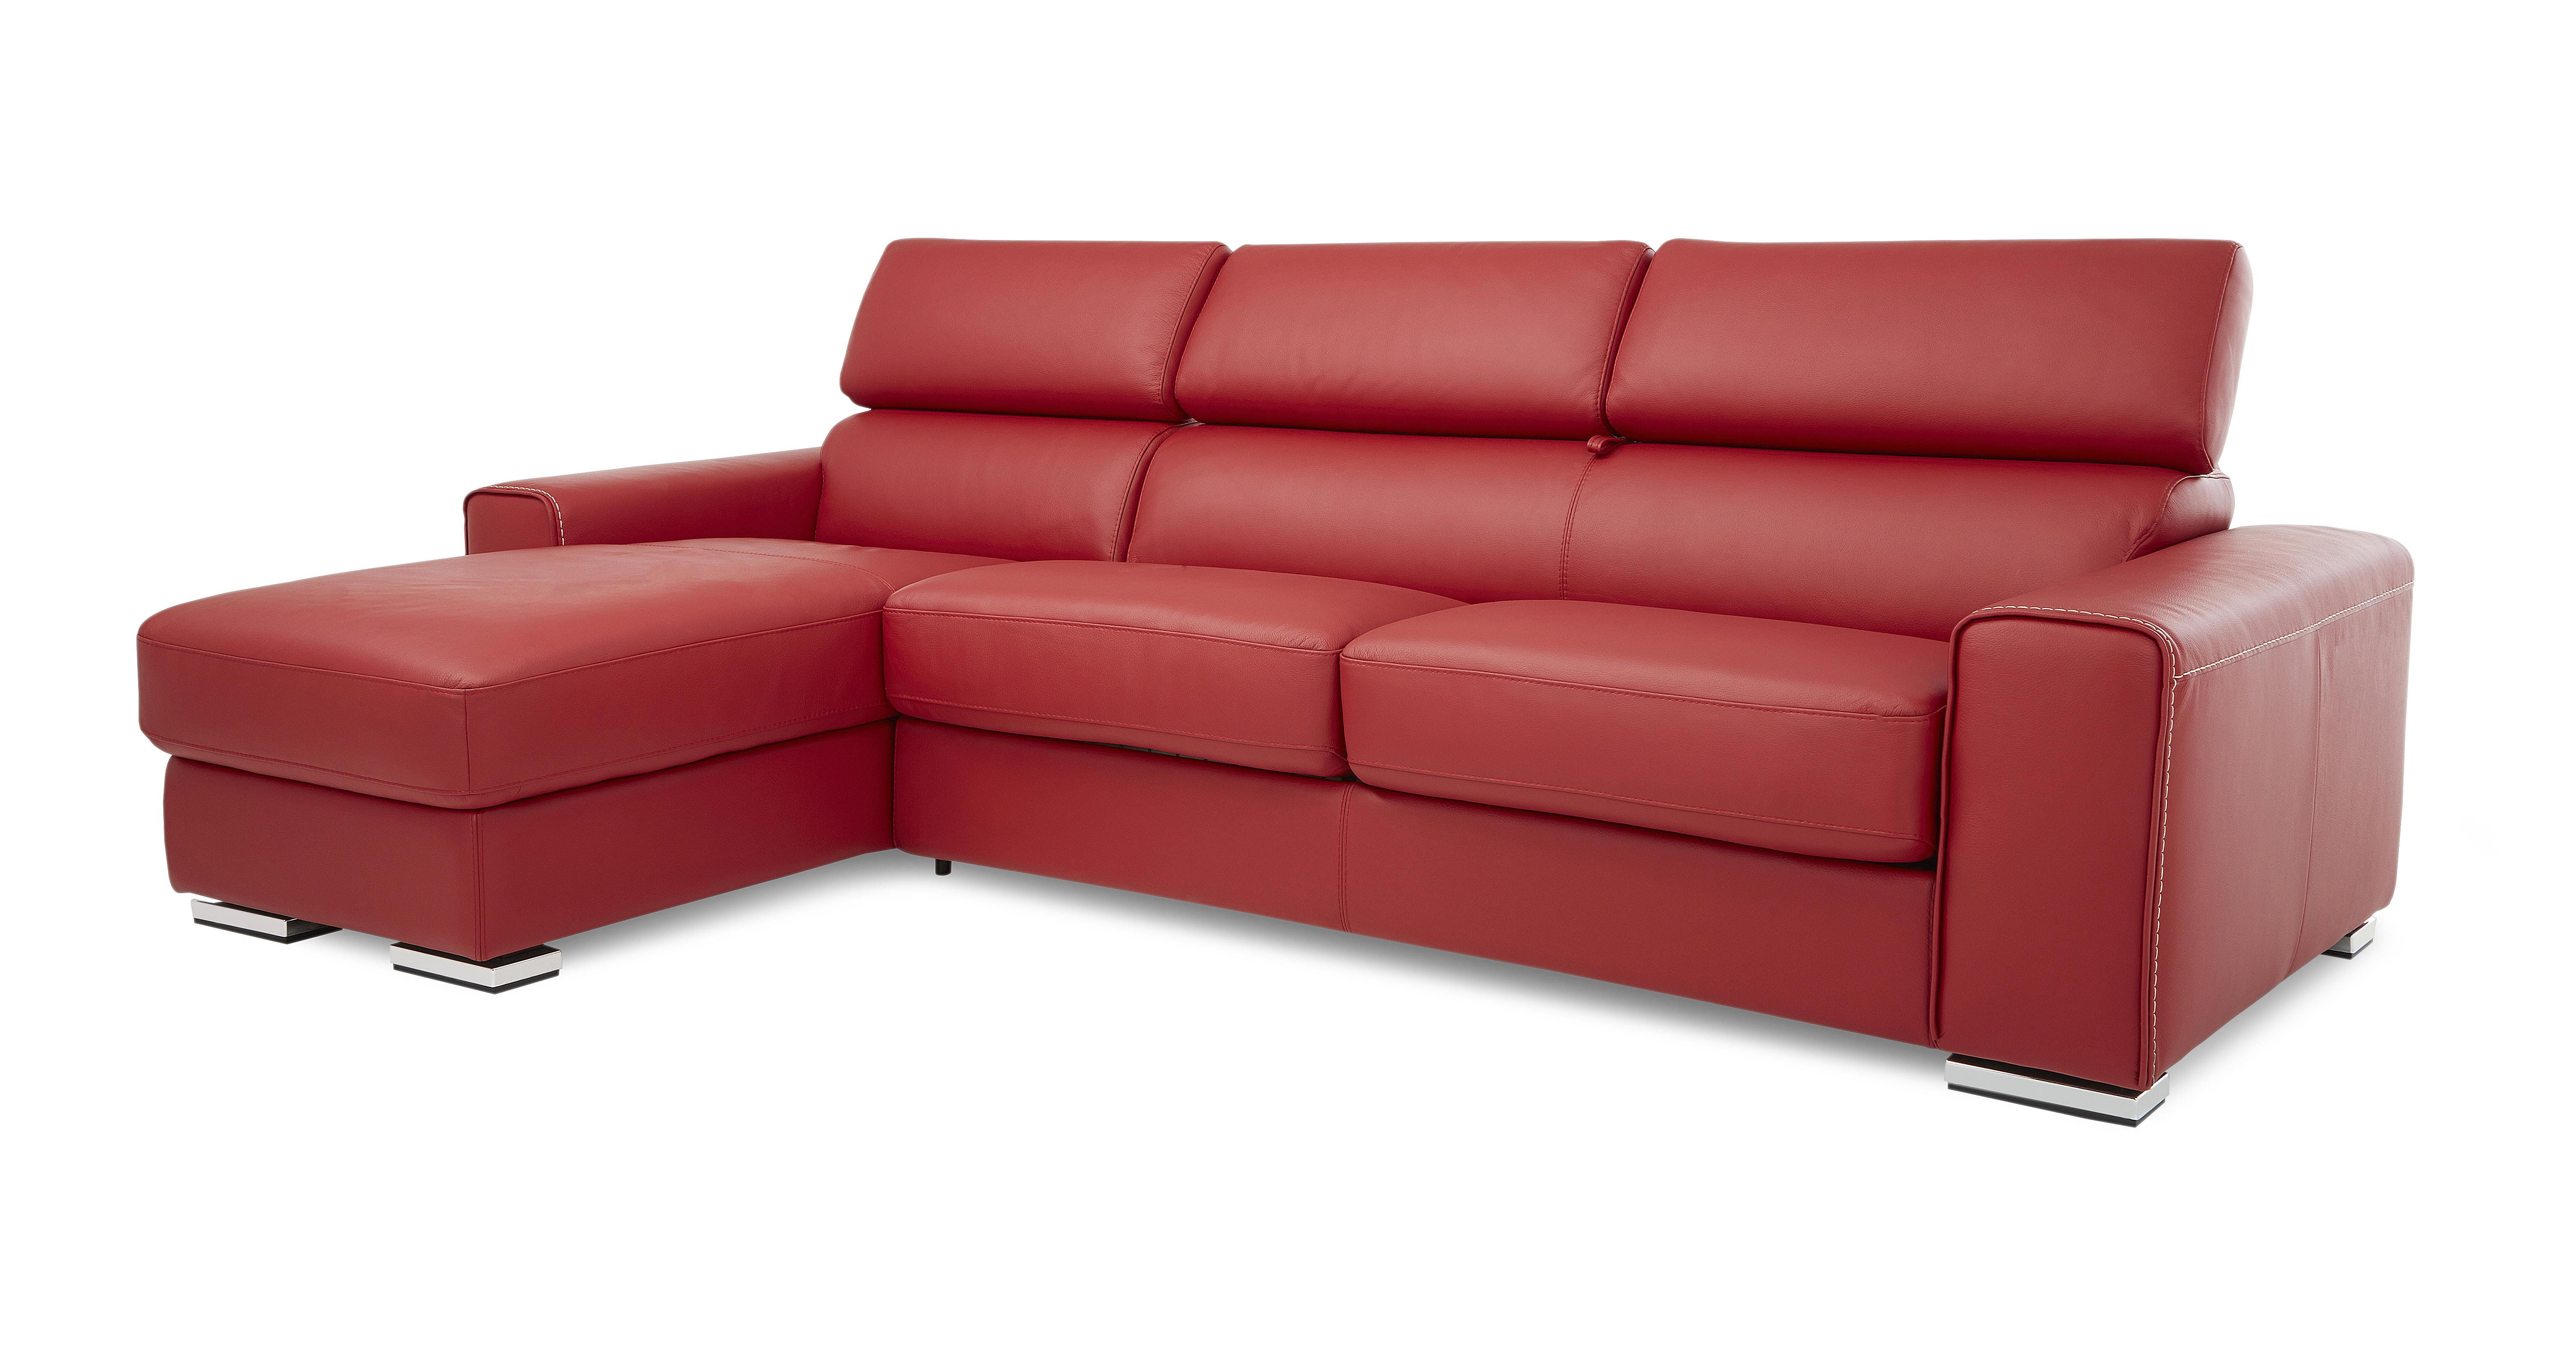 Dfs Red Leather Corner Sofa Bed Www Redglobalmx Org ~ Sofa Beds Orange County